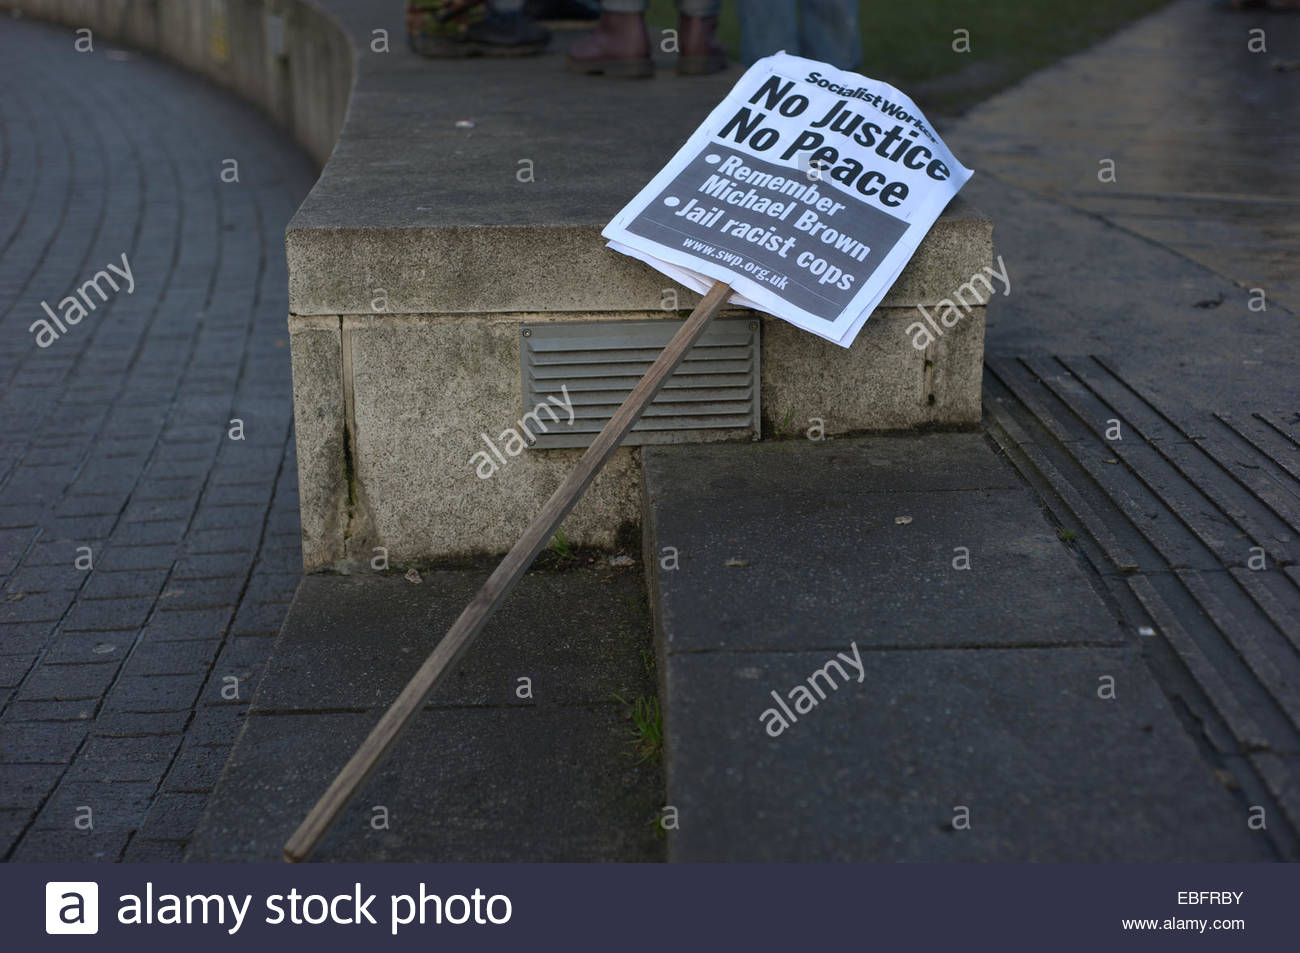 A placard laying on the ground. People of different ethnicities joined together and held a rally and march to remember - Stock Image